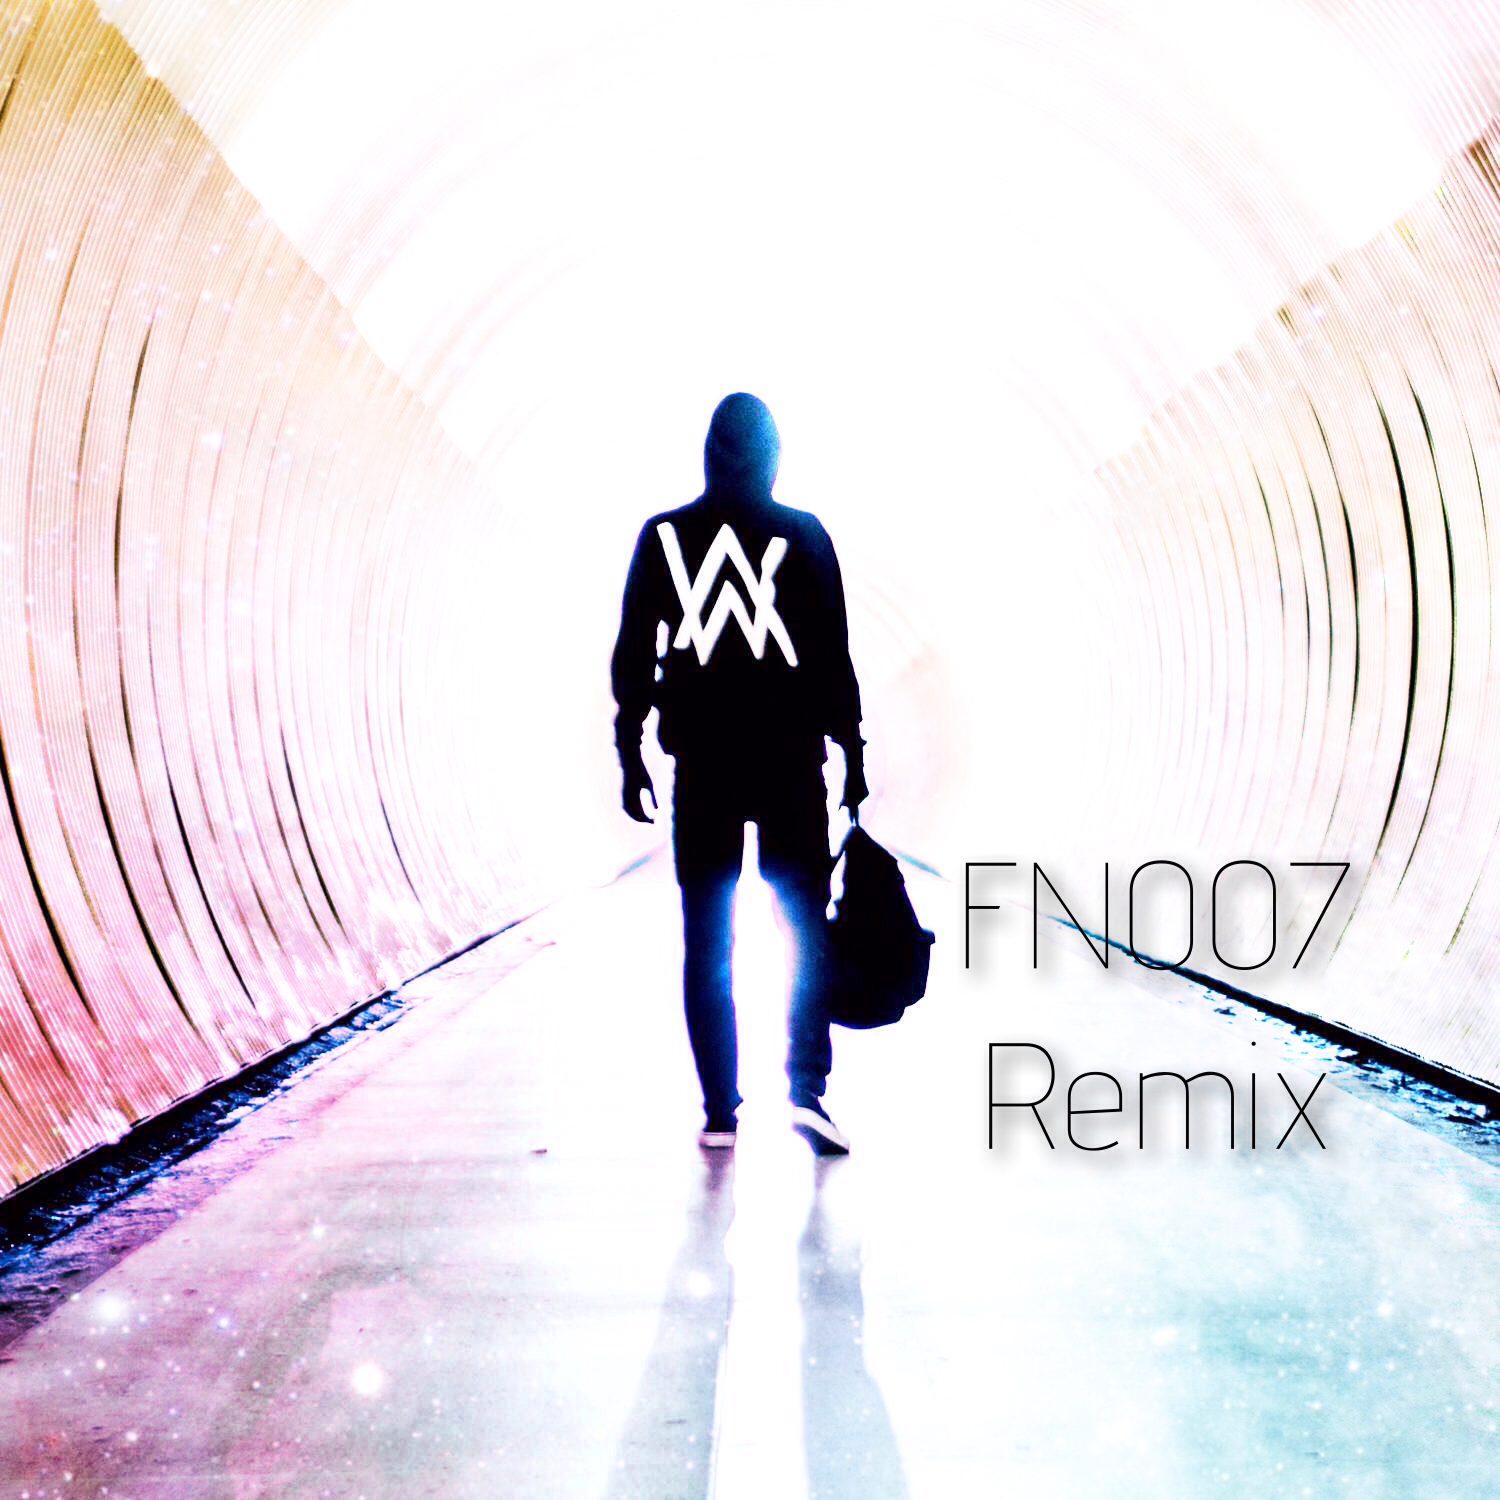 faded (fn007 remix)